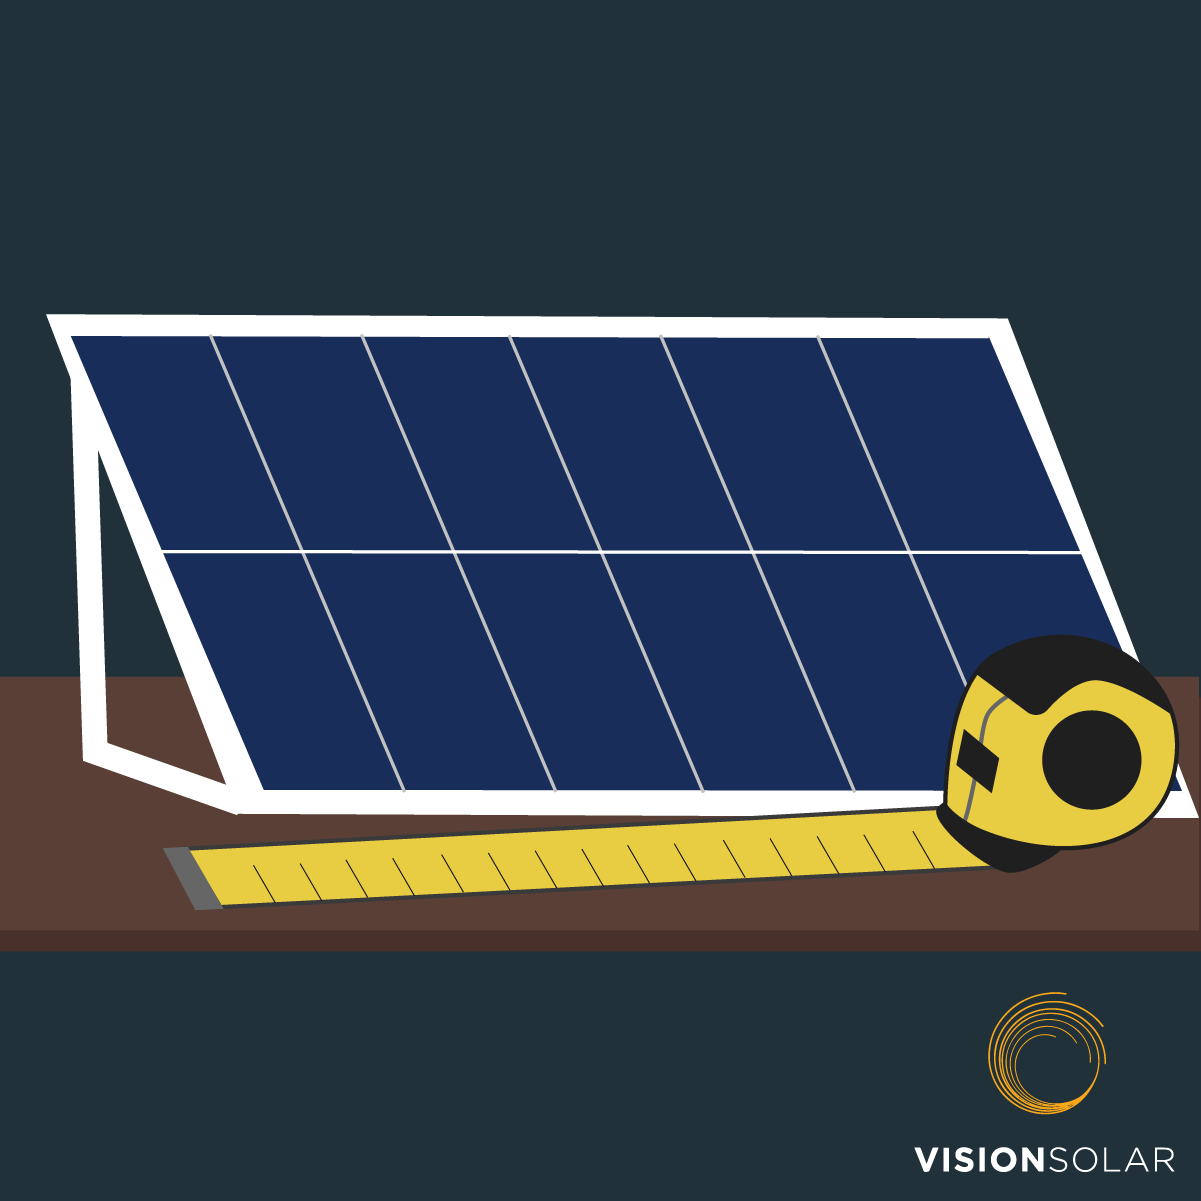 Vision Solar : How Big Is a Solar Panel